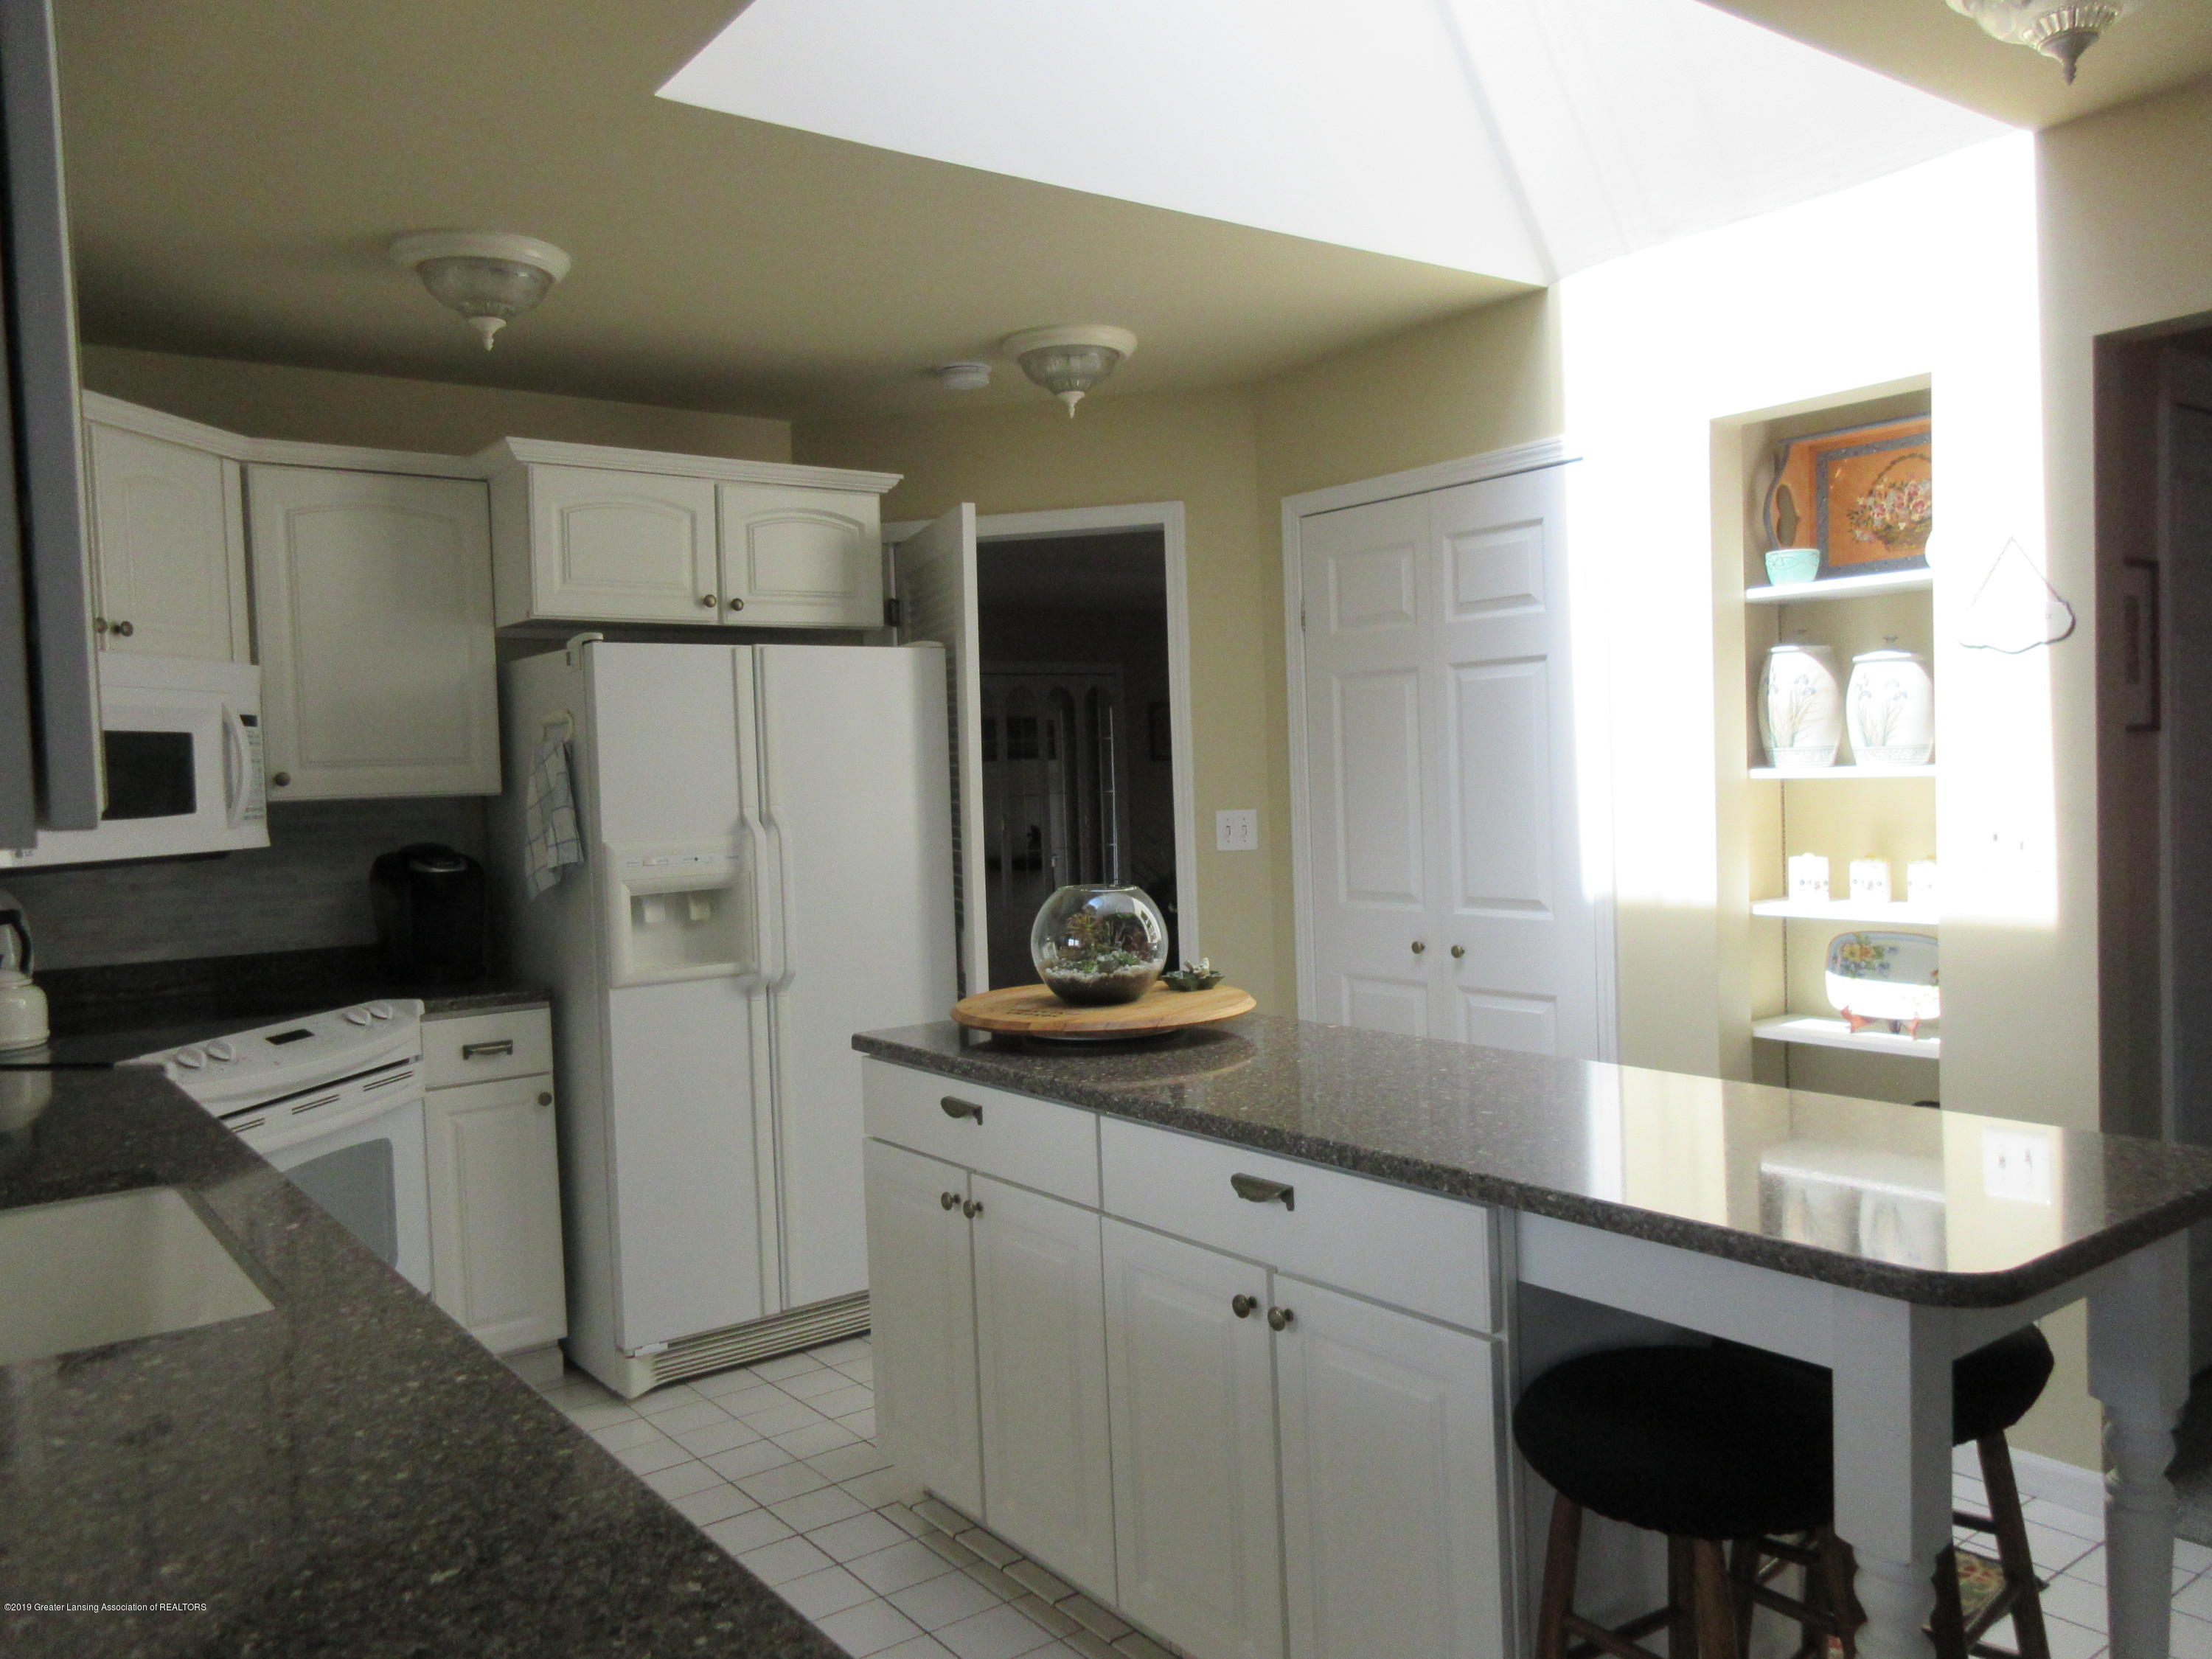 2080 Haslett Rd - kitchen 2 with pantry - 8